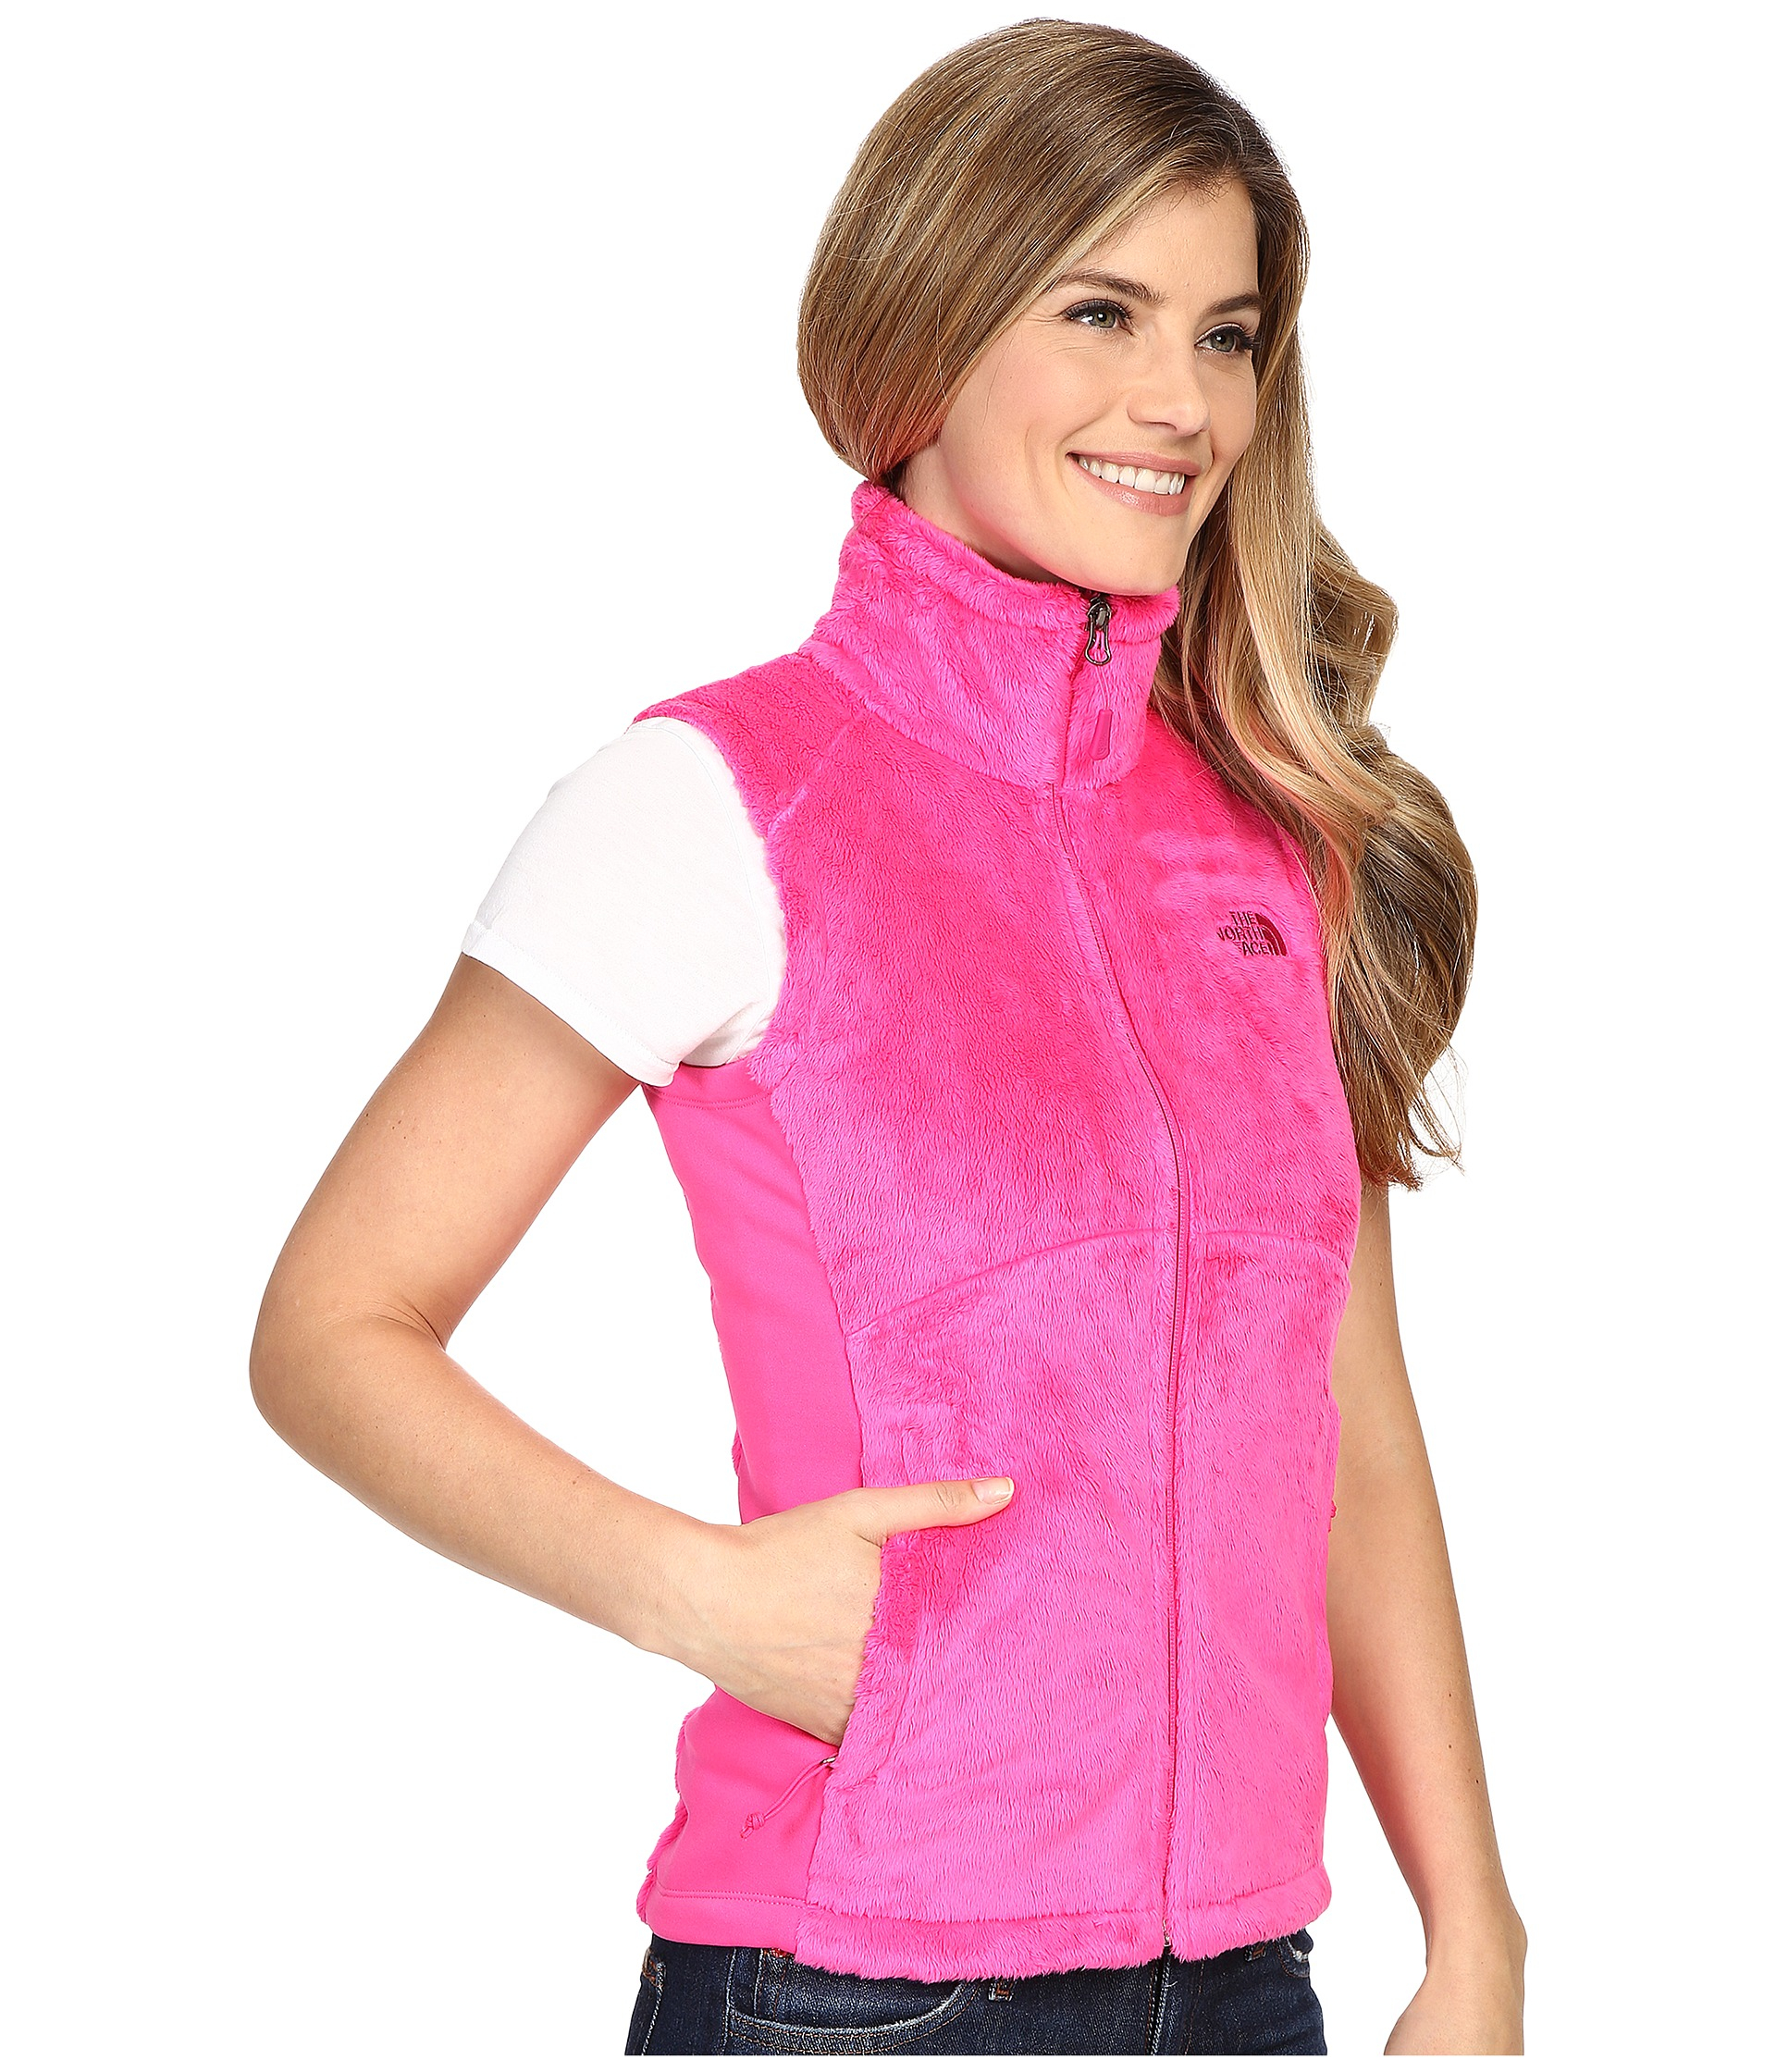 ae0da38c9a ... free shipping lyst the north face osito vest in pink 1a2f6 80daf